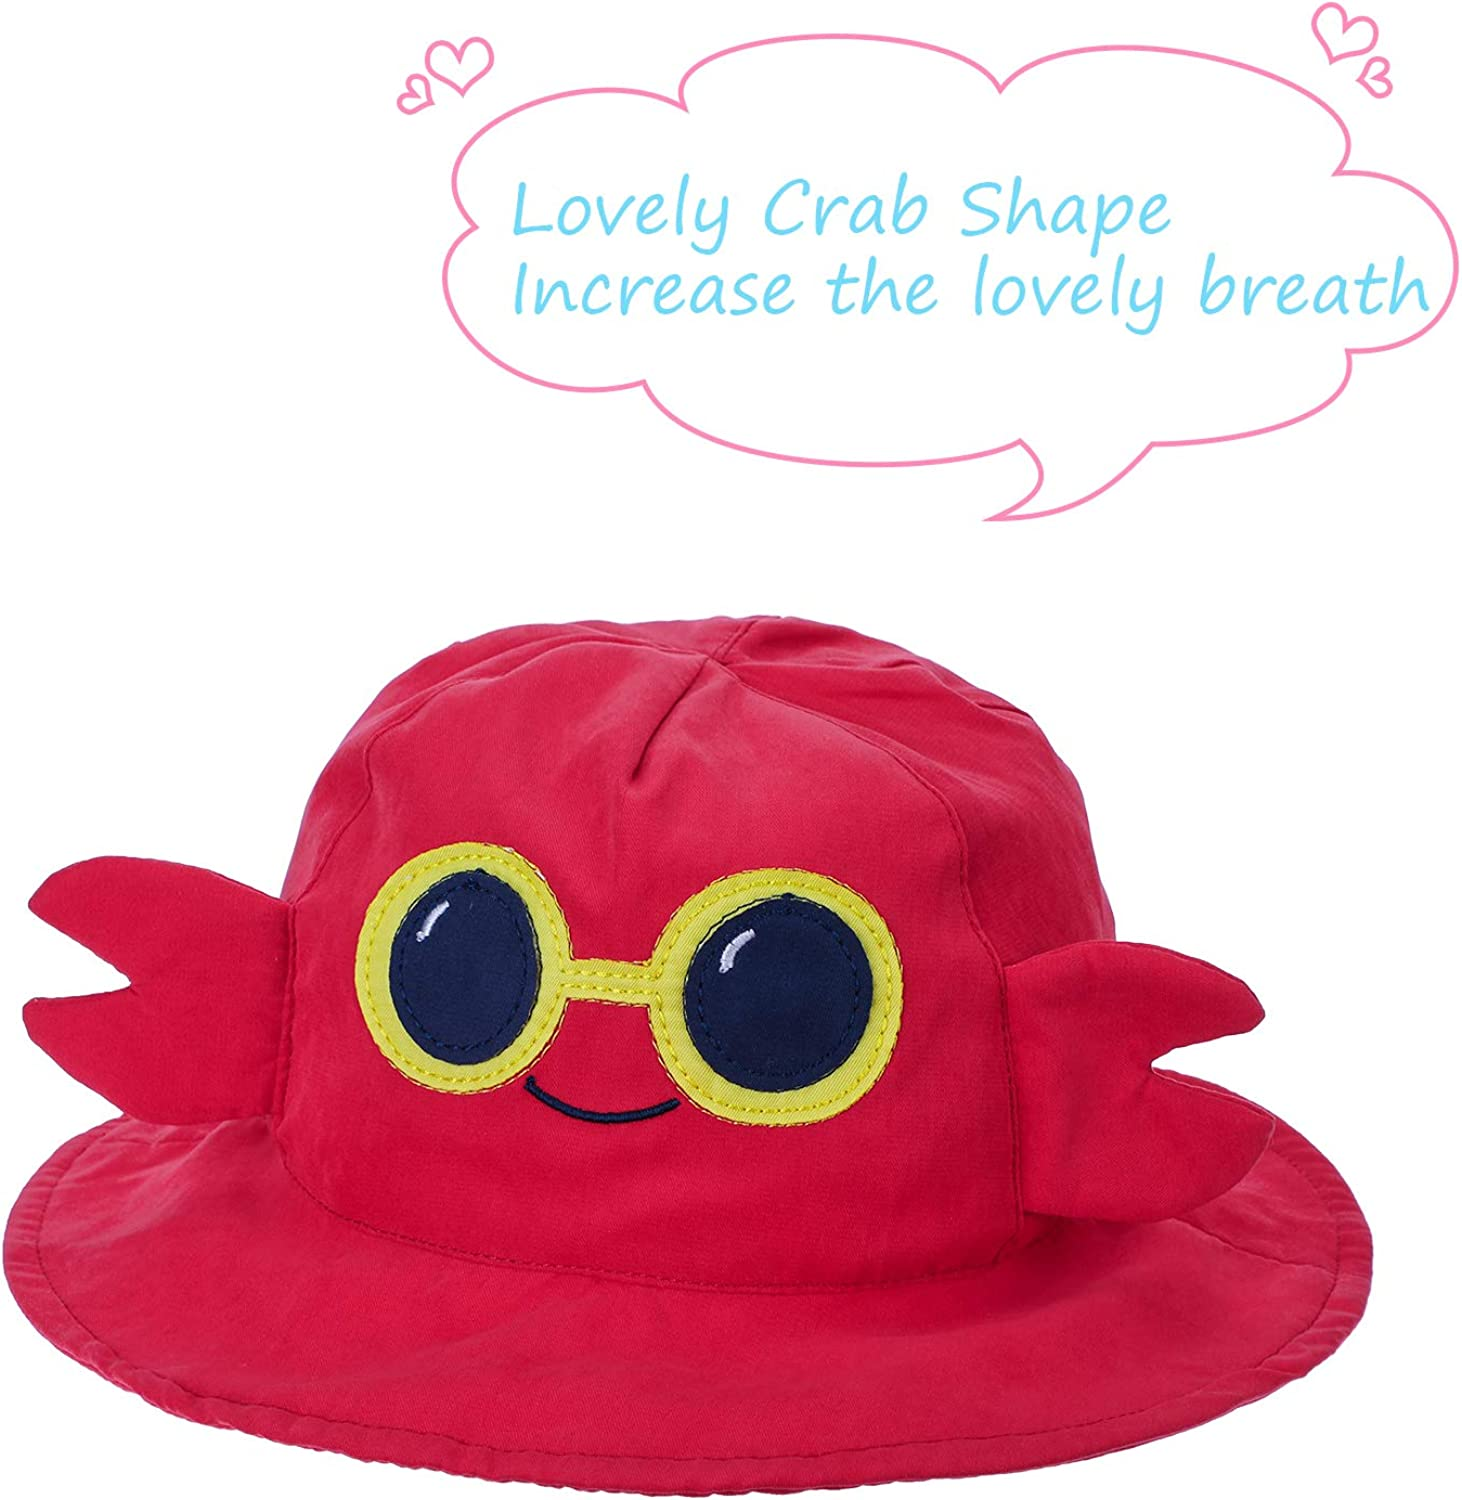 Kids Bucket Hat Sun Protection Hat Cute Patterned Cap Wide Brim Cotton Hat for Toddler Boys Girls Summer Wearing